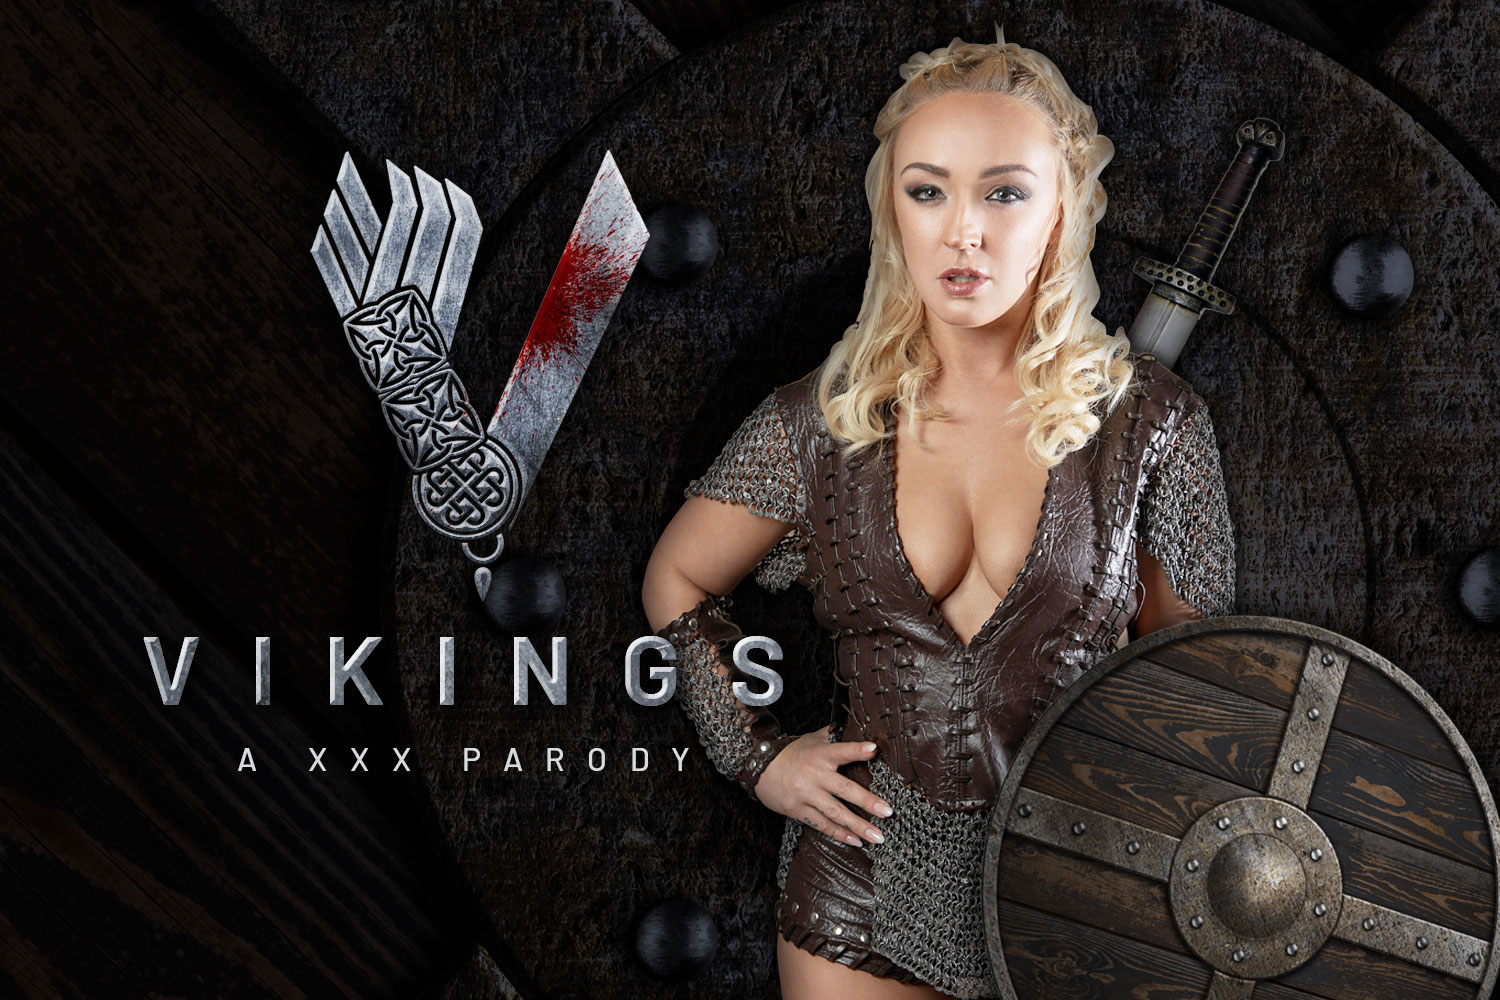 Vikings A XXX Parody VR Porn Video